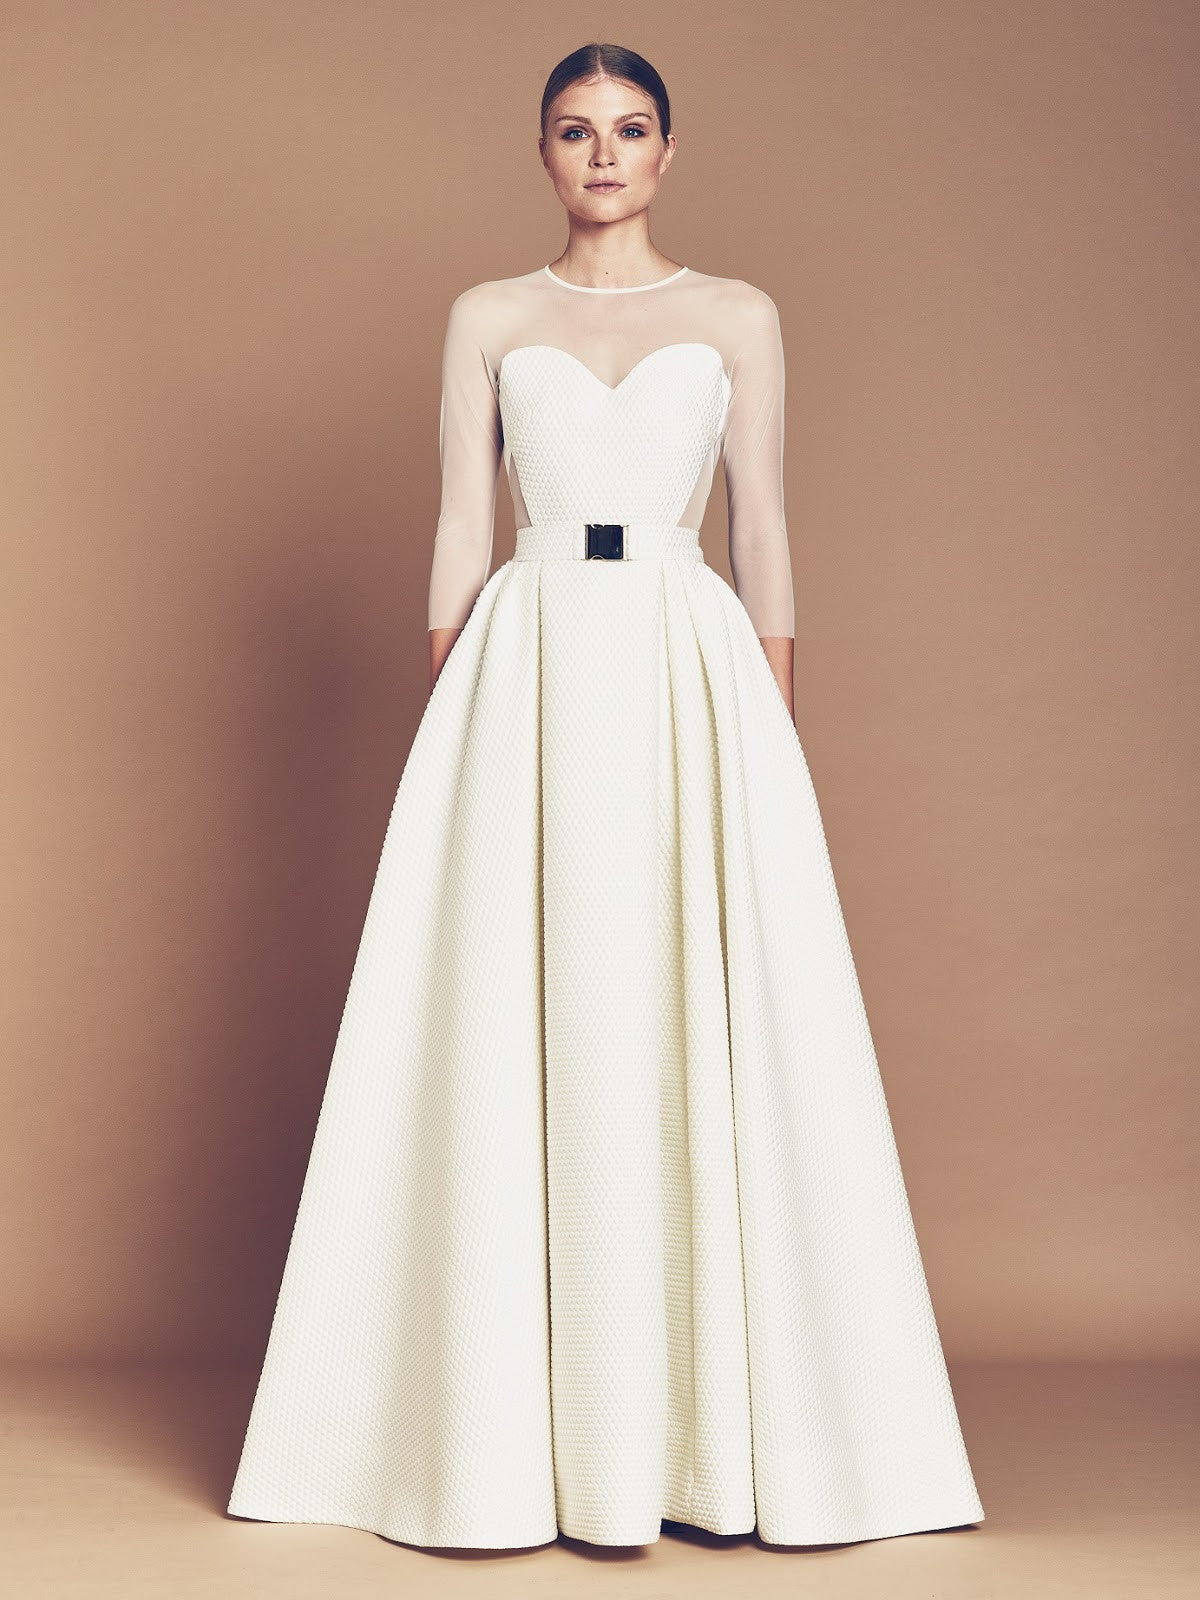 Designer Hasan Hejazi Spring/Summer 2016 Collection's White Gown